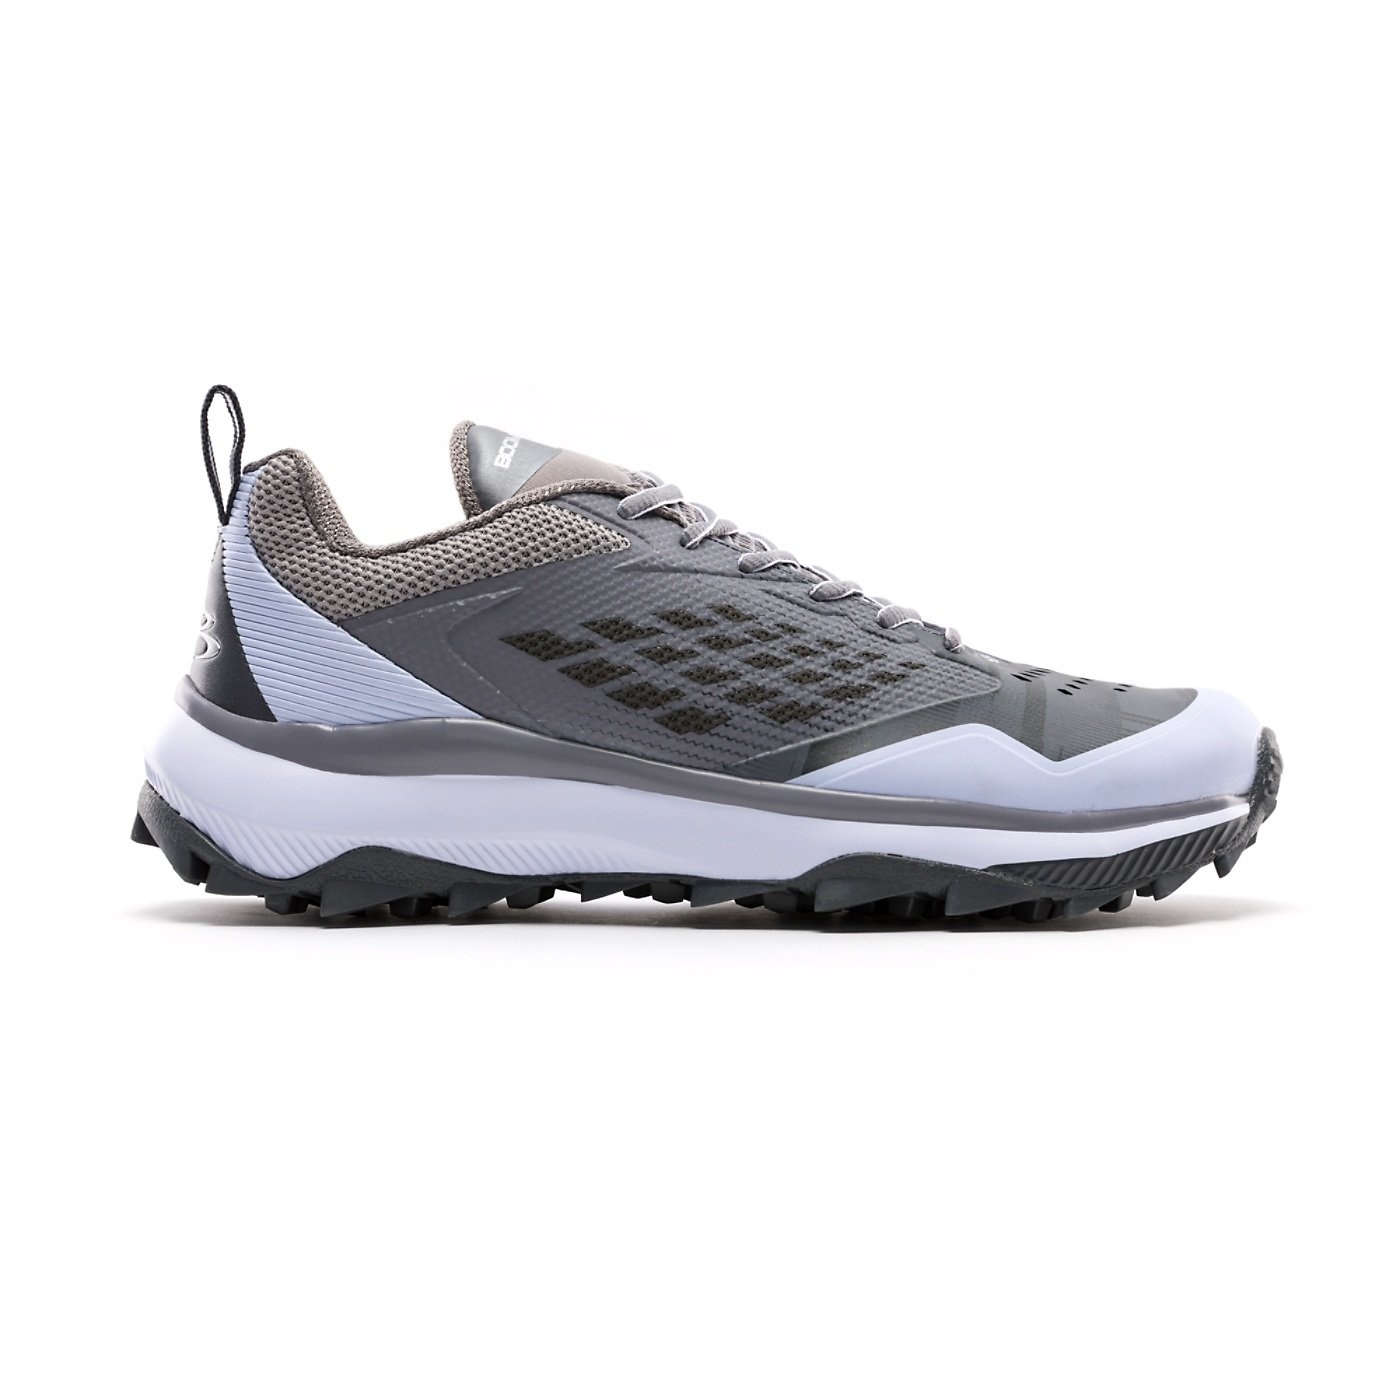 Boombah Men 's Marauder Turf Shoes – 8カラーオプション – 複数のサイズ B07BS4259D 13|Gray/Charcoal Gray/Charcoal 13